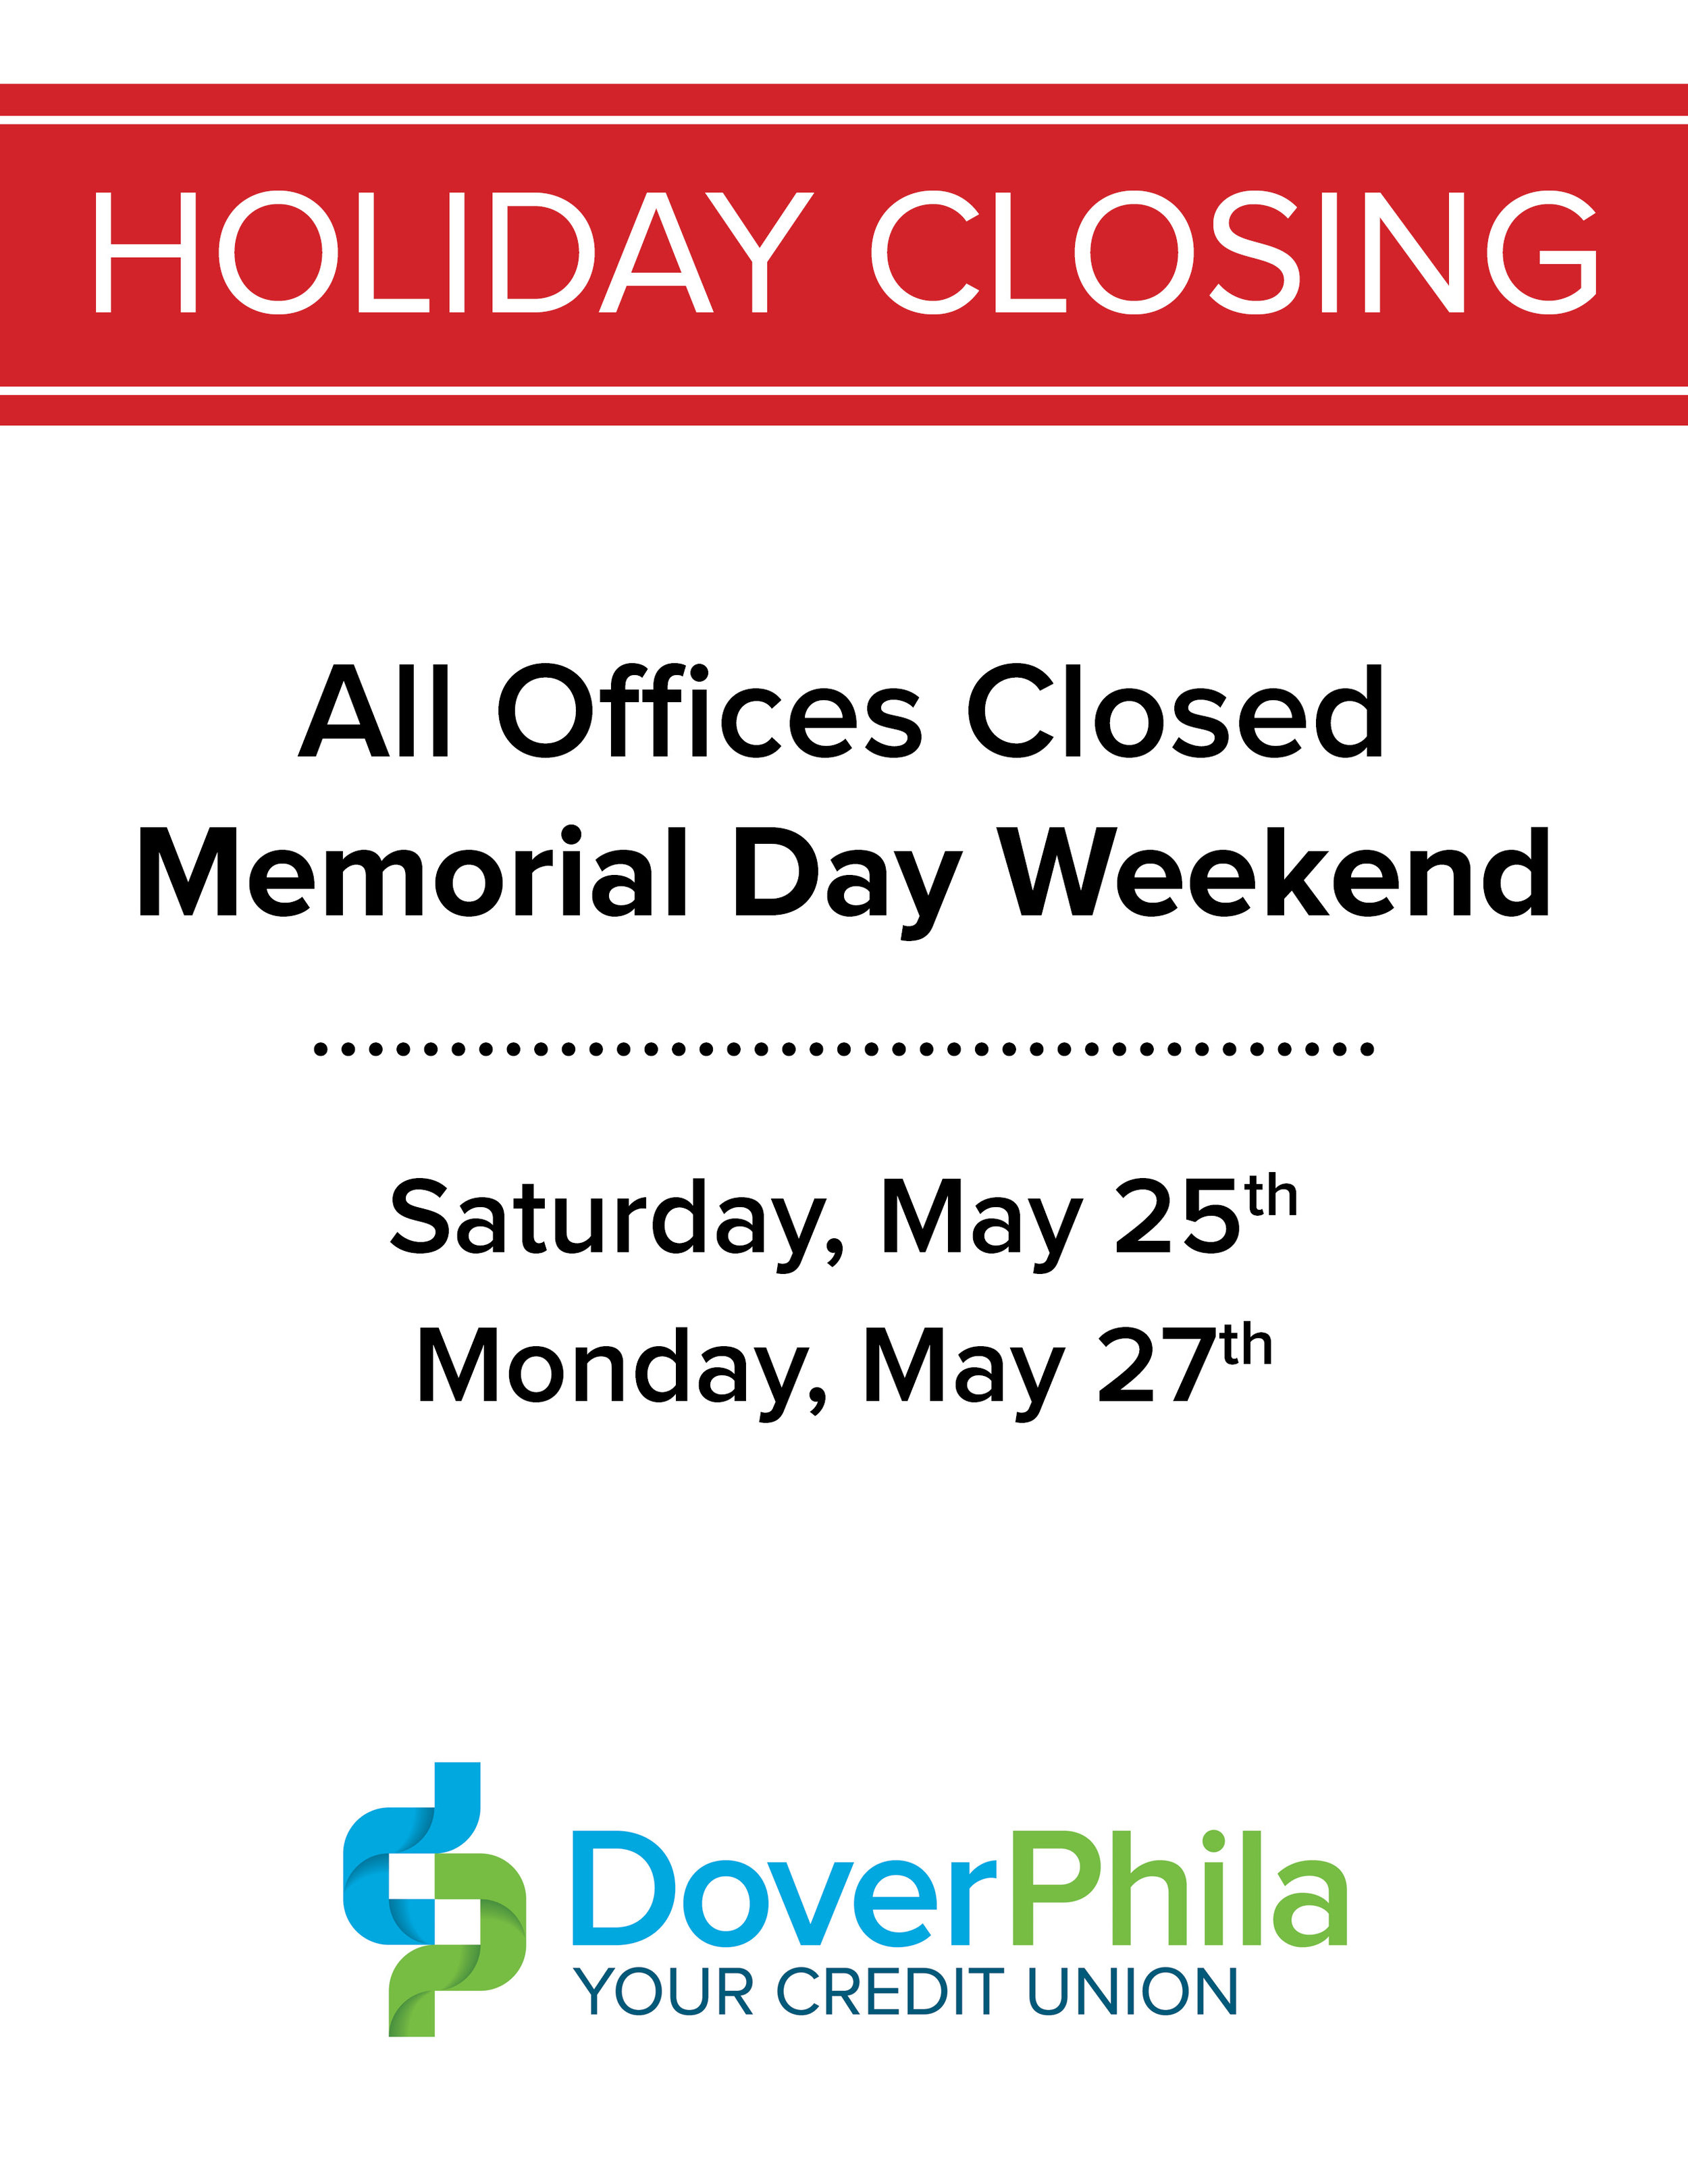 Holiday Closing: Memorial Day Weekend